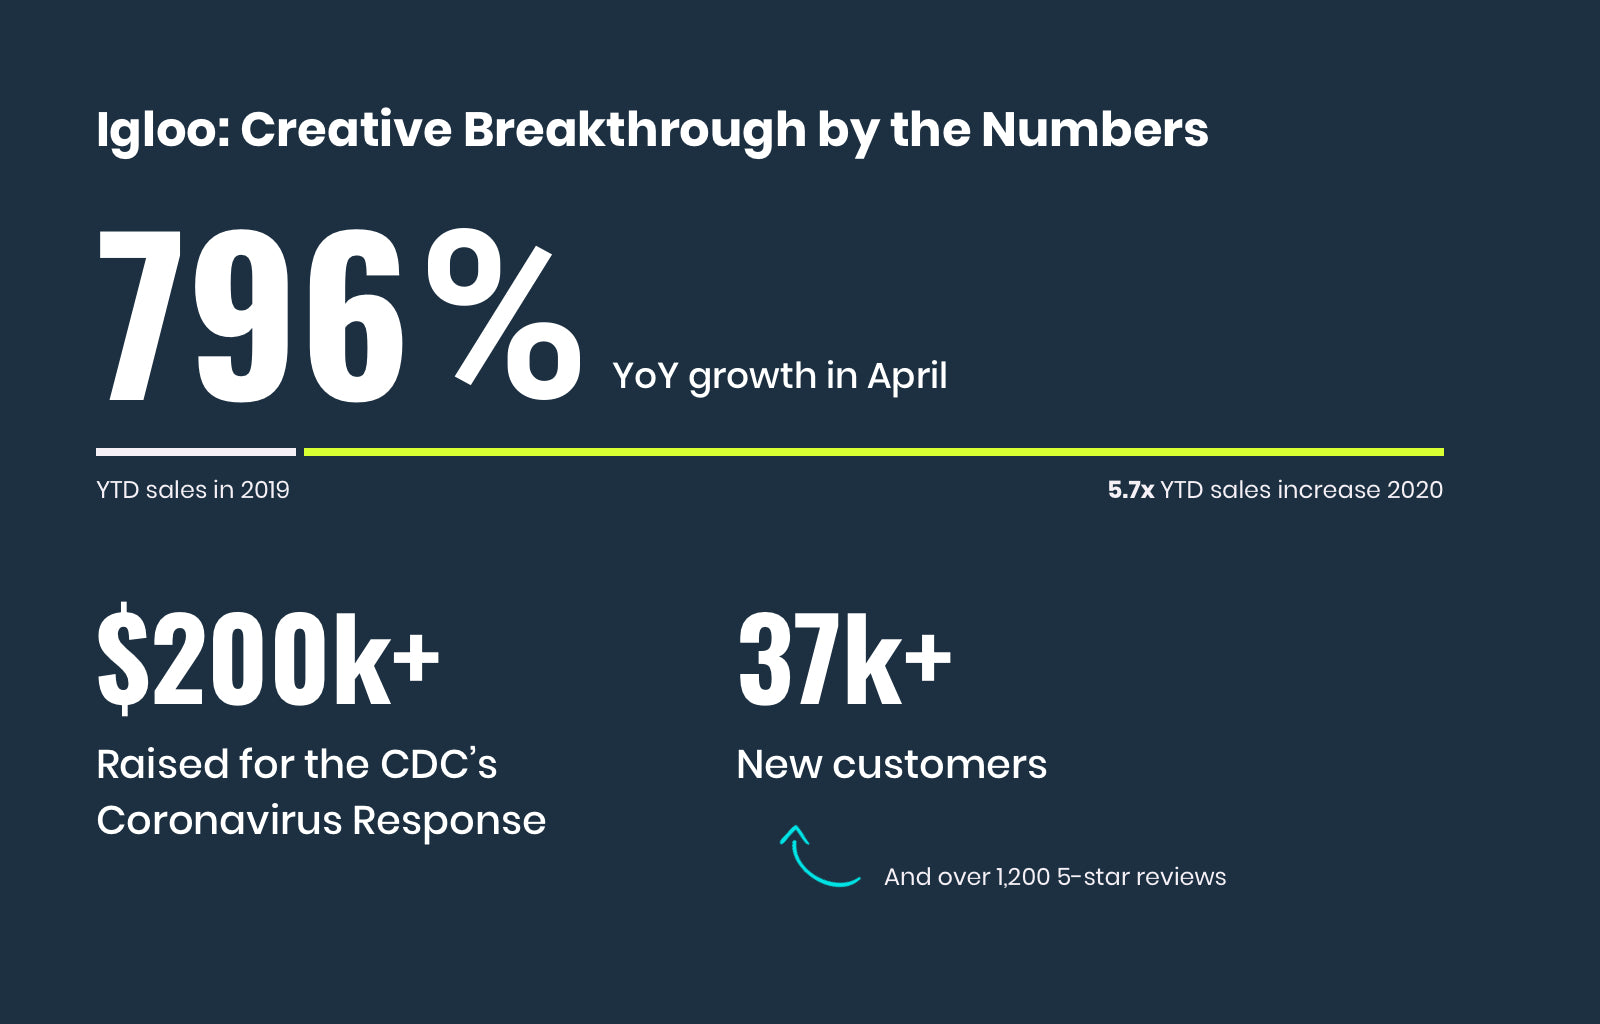 Igloo - Ad Breakthrough by the Numbers